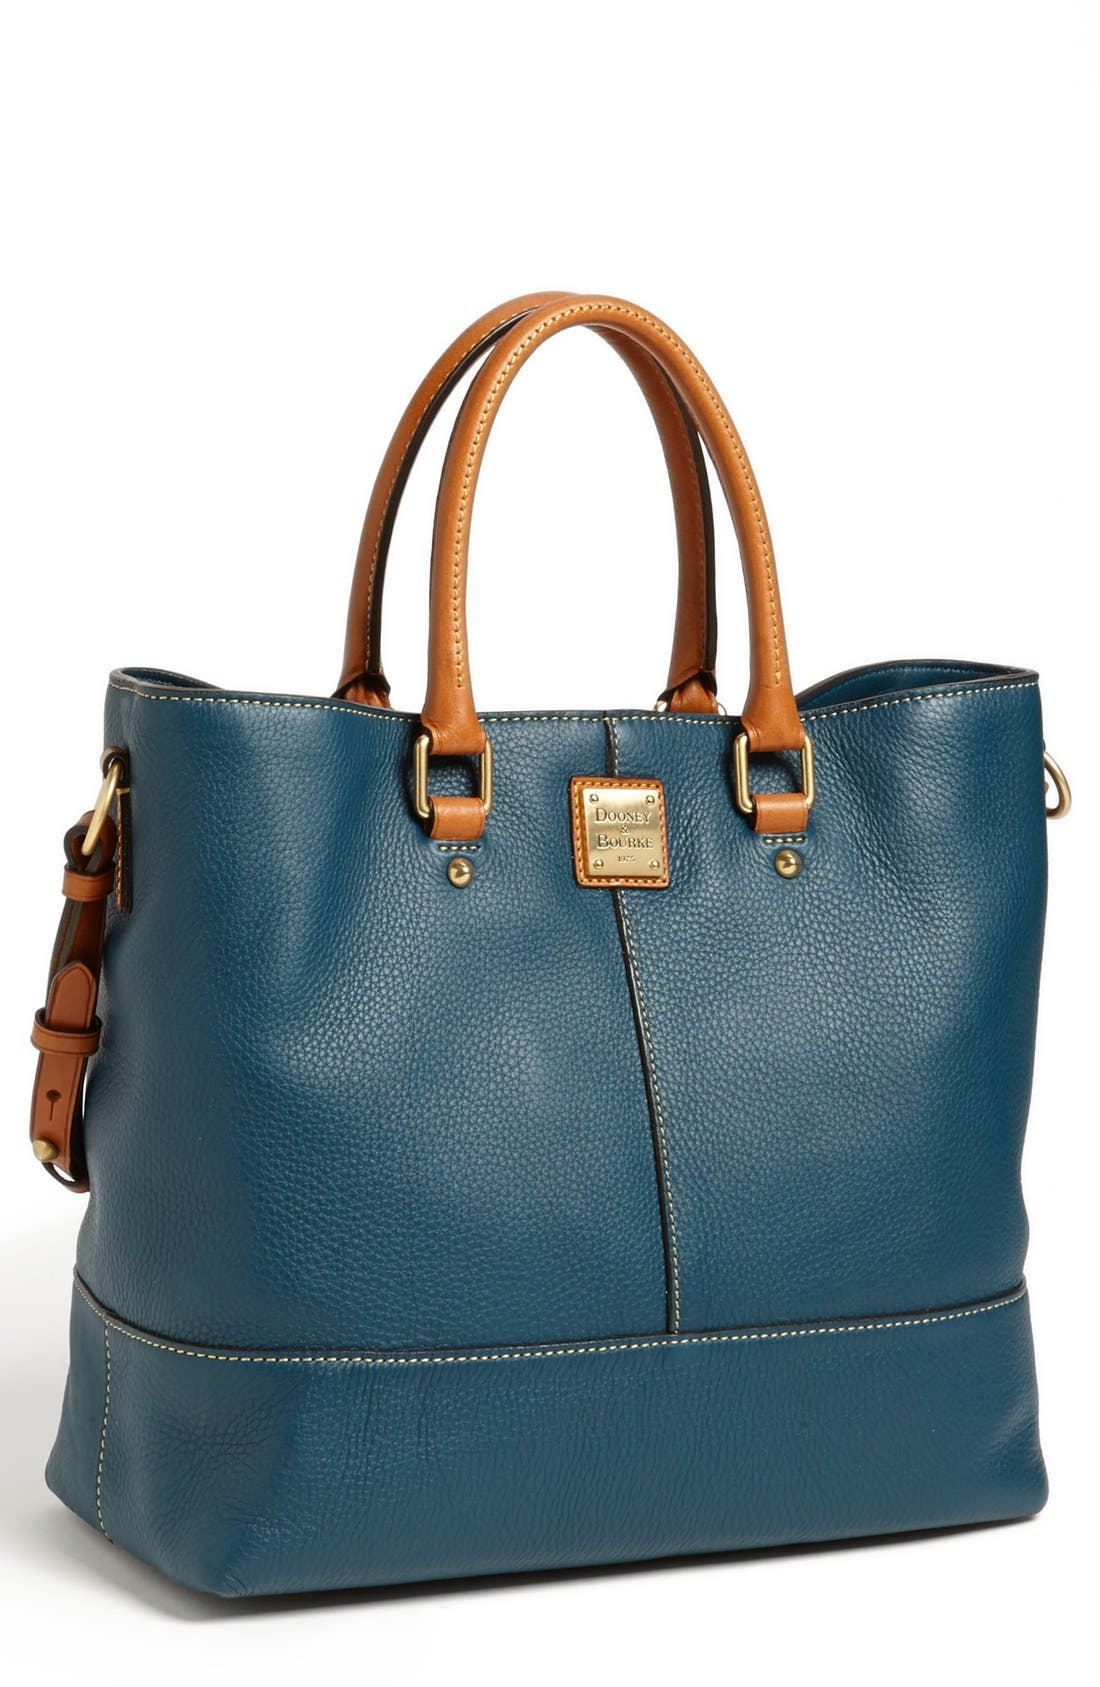 Main Image - Dooney & Bourke 'Chelsea - Dillen II Collection' Leather Tote